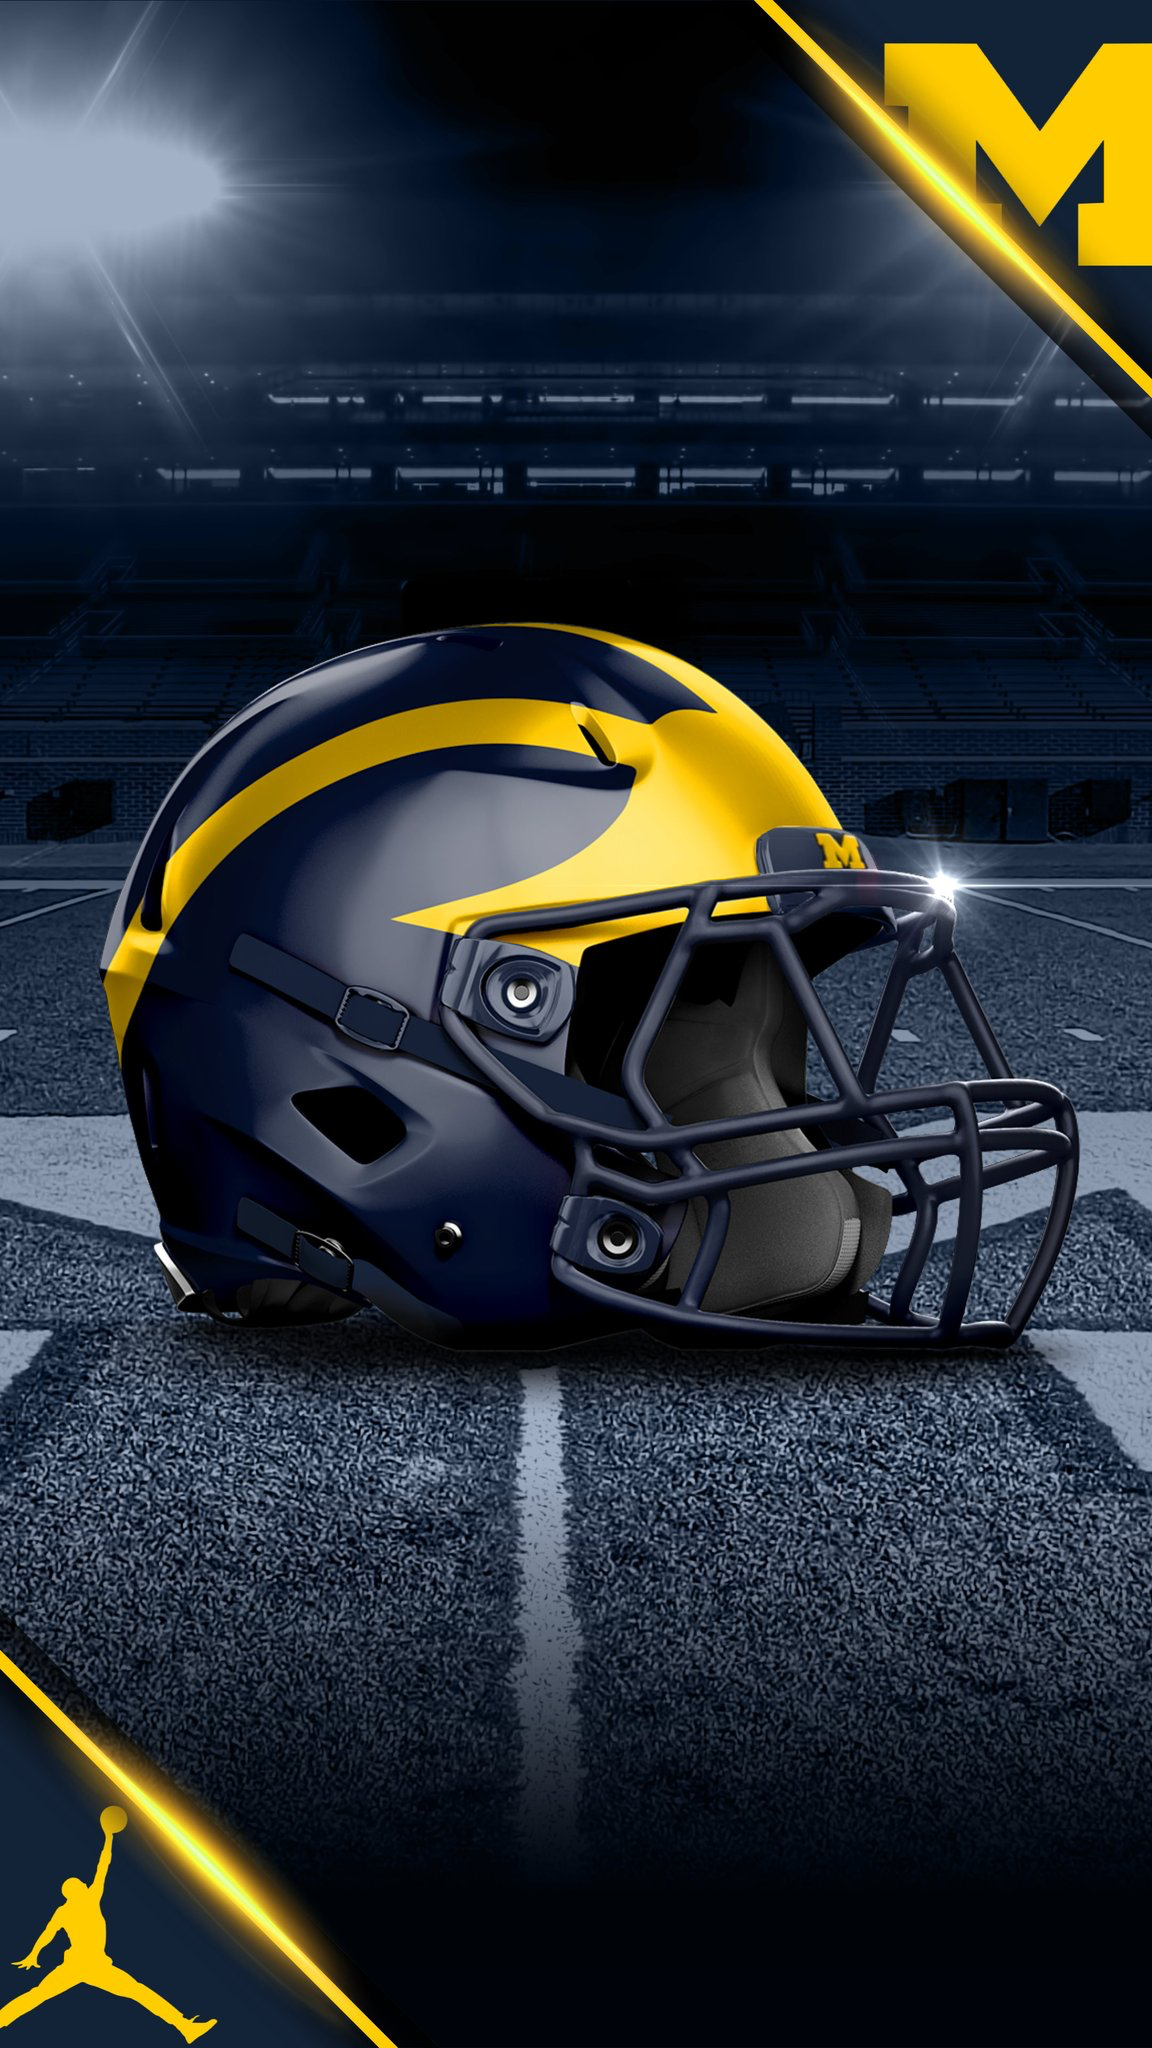 Pin By Amanda On Michigan Football Michigan Wolverines Football Michigan Football Helmet Wolverines Football